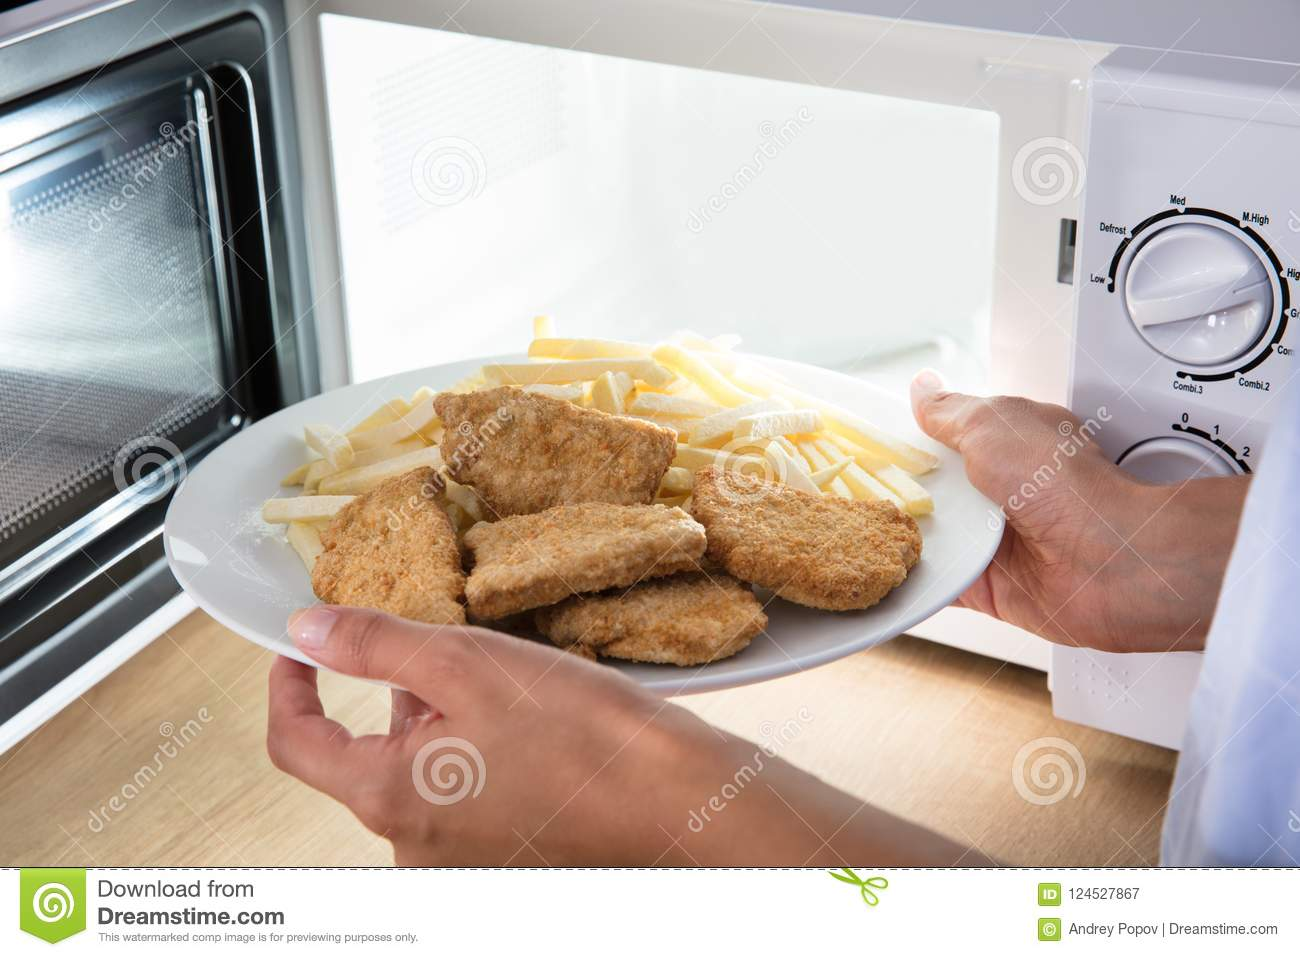 Person Heating Fried Food In-Magnetron